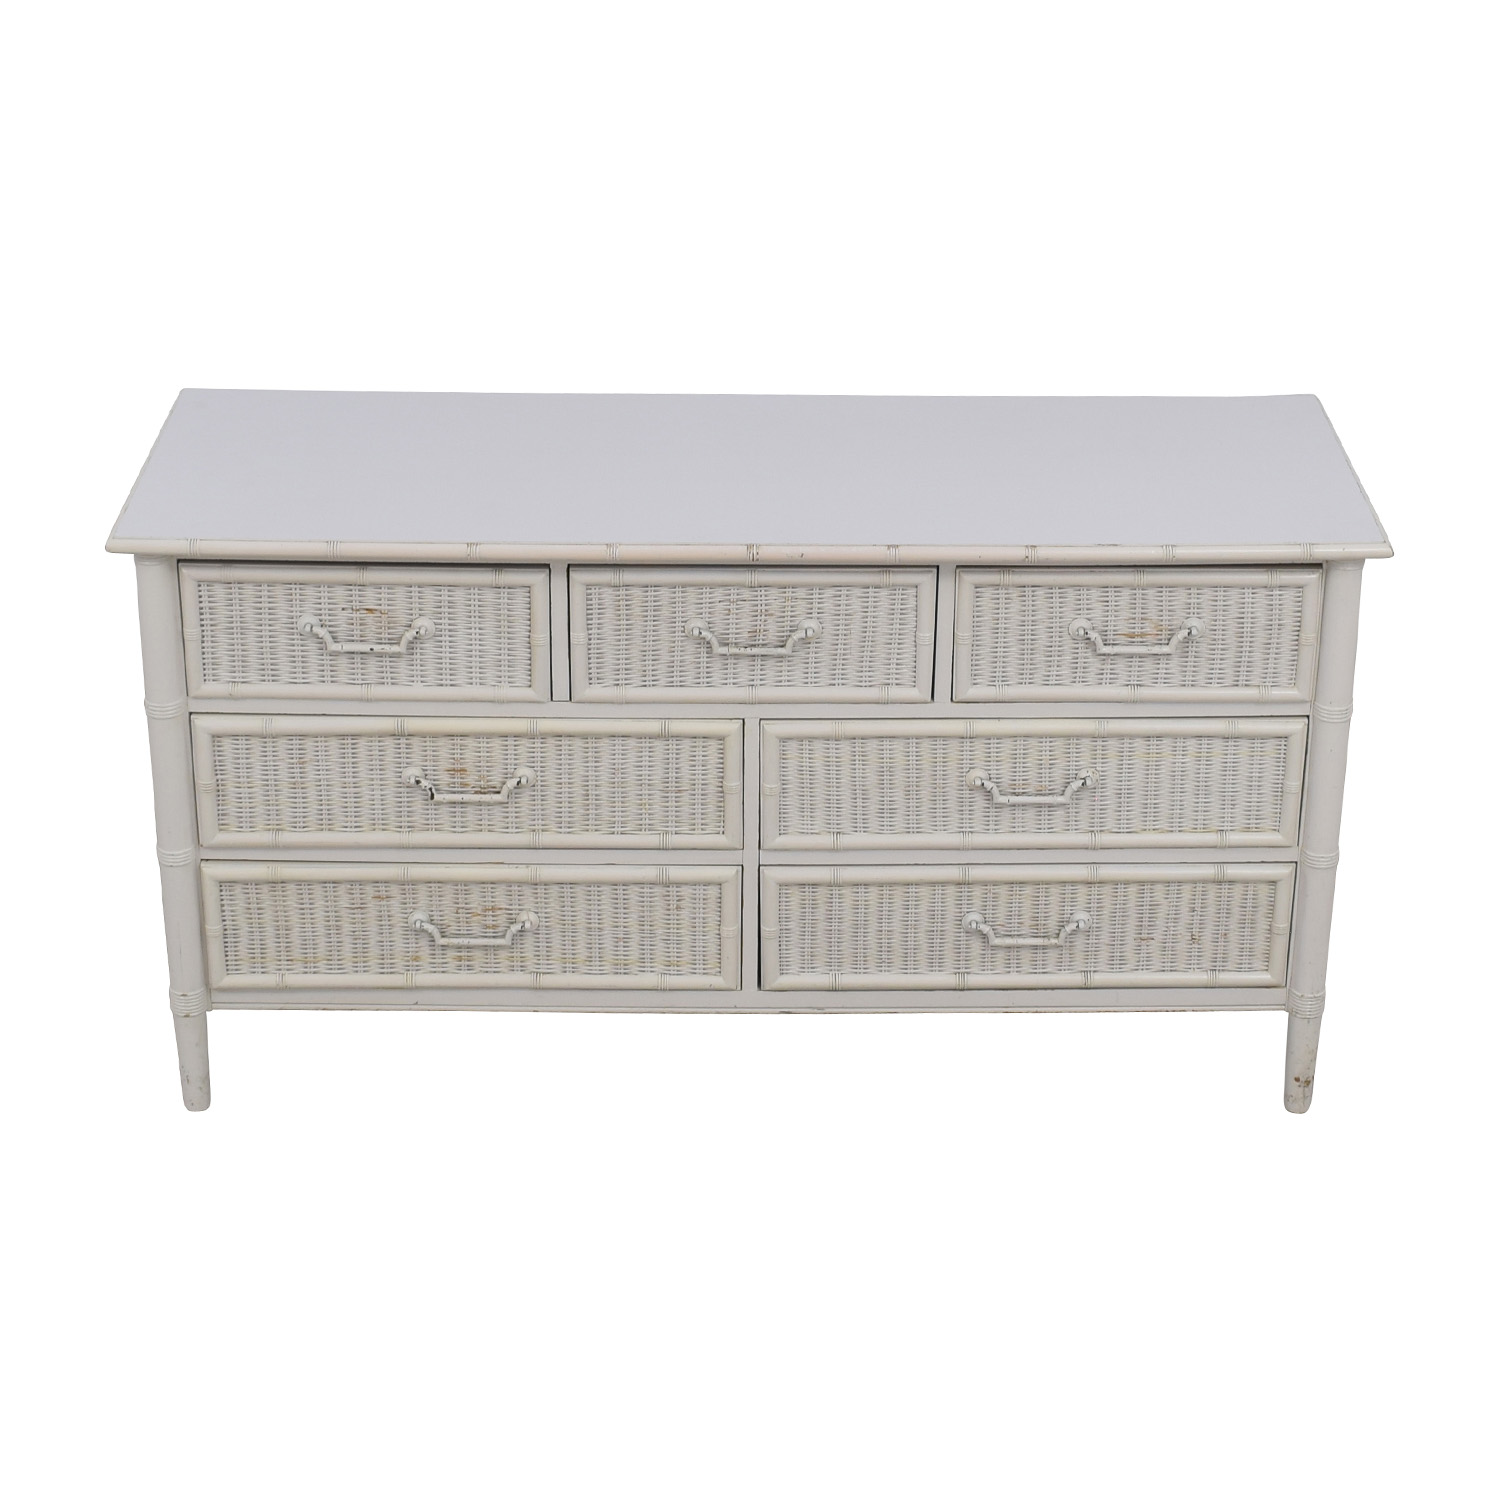 Dixie Dixie Vintage White Seven-Drawer Wicker Dresser Storage